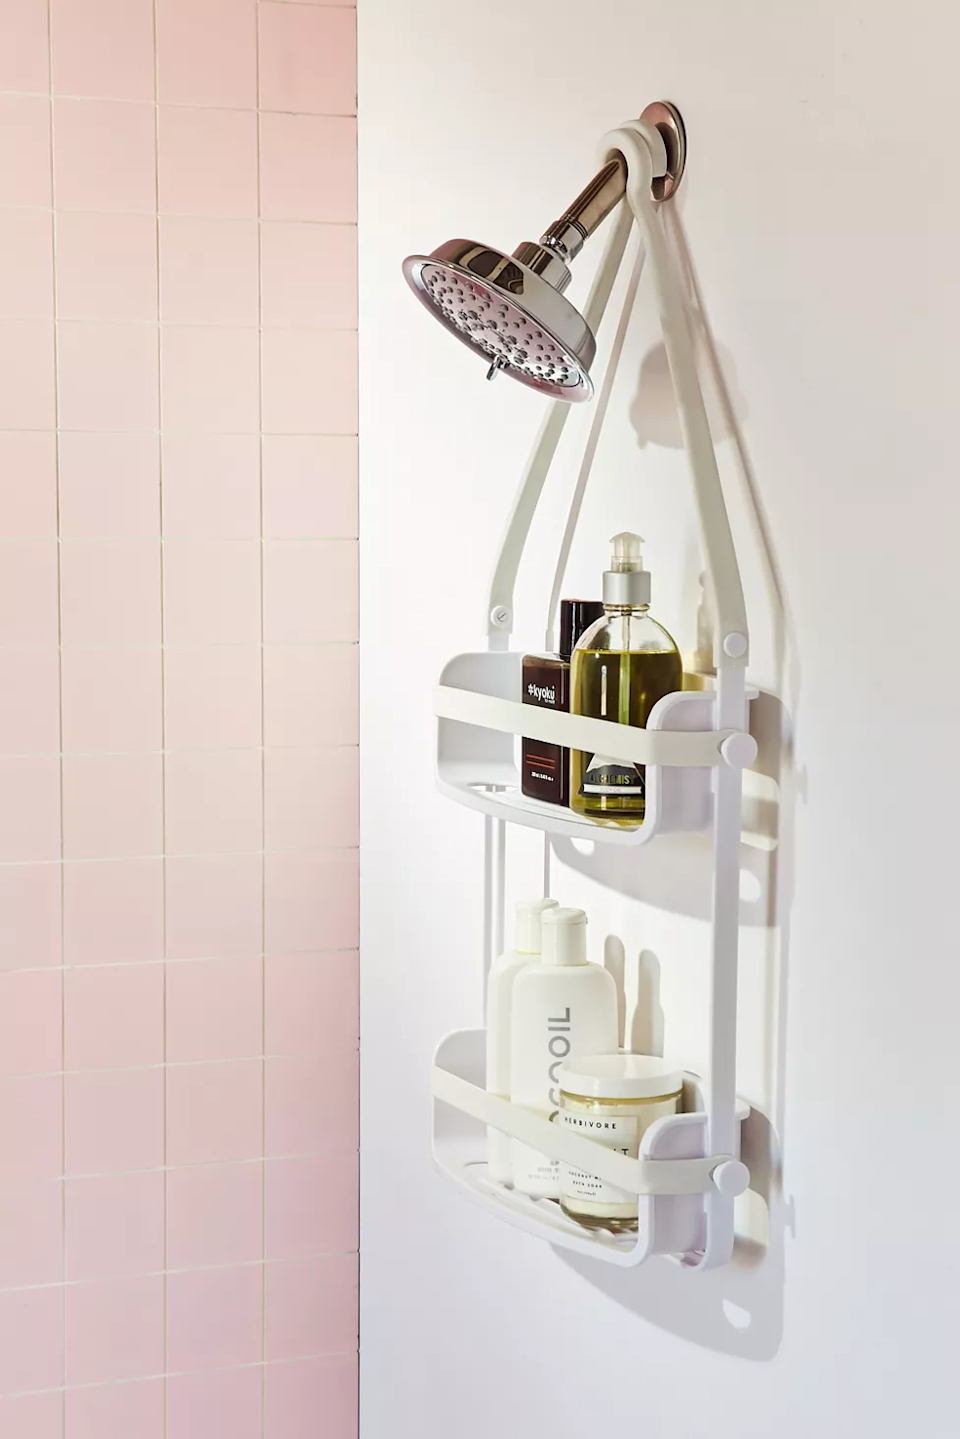 "<h2><a href=""https://www.urbanoutfitters.com/shop/preston-flex-shower-caddy"" rel=""nofollow noopener"" target=""_blank"" data-ylk=""slk:Urban Outfitters Preston Shower Caddy"" class=""link rapid-noclick-resp"">Urban Outfitters Preston Shower Caddy</a></h2><br><strong>When your dream bathroom beauty #shelfie is just a dream:</strong> This over-the-shower-head solution is ready for its Instagram closeup, displaying everything from your enviable skin to hair-care routines and even your favorite tiny succulents. <br><br><strong>Urban Outfitters</strong> Preston Shower Caddy, $, available at <a href=""https://go.skimresources.com/?id=30283X879131&url=https%3A%2F%2Fwww.urbanoutfitters.com%2Fshop%2Fpreston-flex-shower-caddy"" rel=""nofollow noopener"" target=""_blank"" data-ylk=""slk:Urban Outfitters"" class=""link rapid-noclick-resp"">Urban Outfitters</a>"